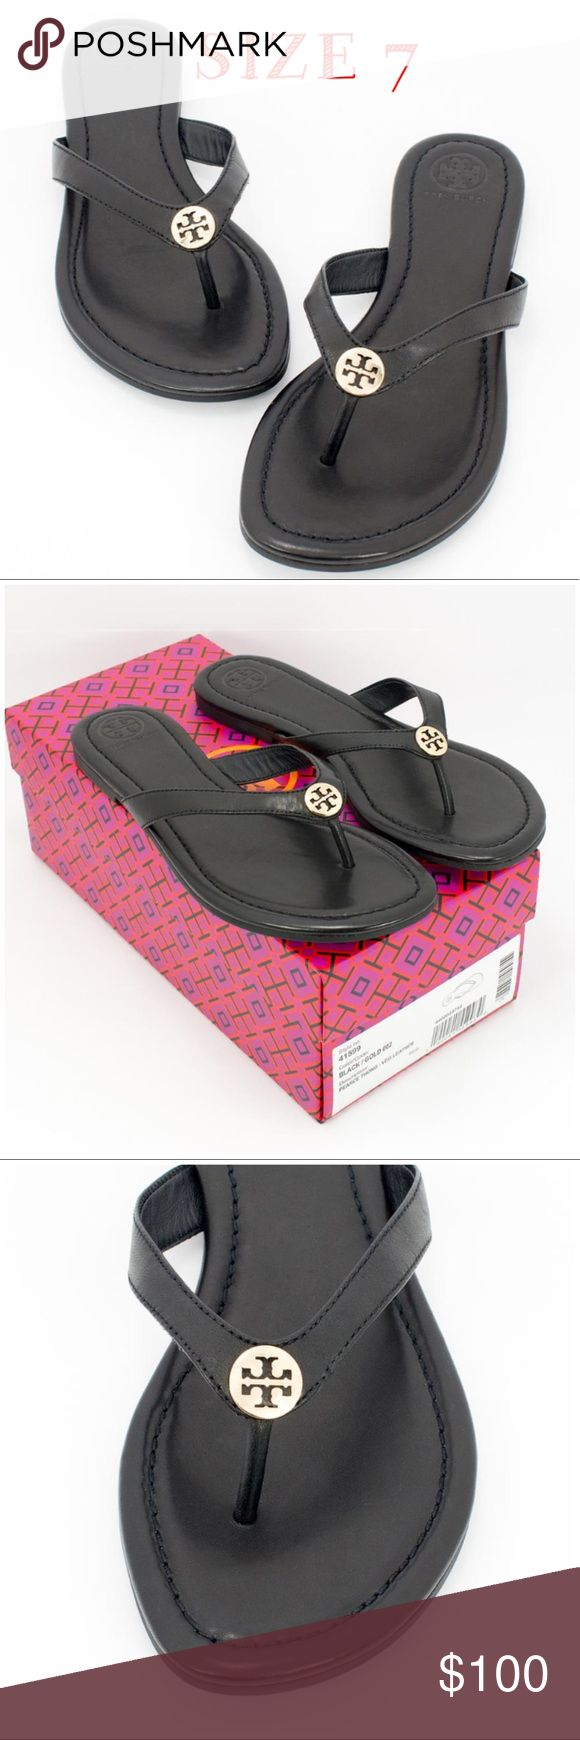 "TORY BURCH THONG VEG LEATHER SANDALS SIZE 7 NEW! TORY BURCH ~ Thong Veg Leather Black/Gold Sandals Brand New with Box  Size: US 7  Regular (M, B)  RETAILS: $150  The epitome of carefree elegance, the Pearce Thong Sandal features impeccable details on the ultimate leisure-perfect shoe. A comfortable wide band, mini gold logo and Veg leather footbed create a look that's simply chic.  -1/4"" stacked heel.  -Leather footbed.  -Rubber sole.  -Imported. Comes in an original Tory Burch Shoe Box…"